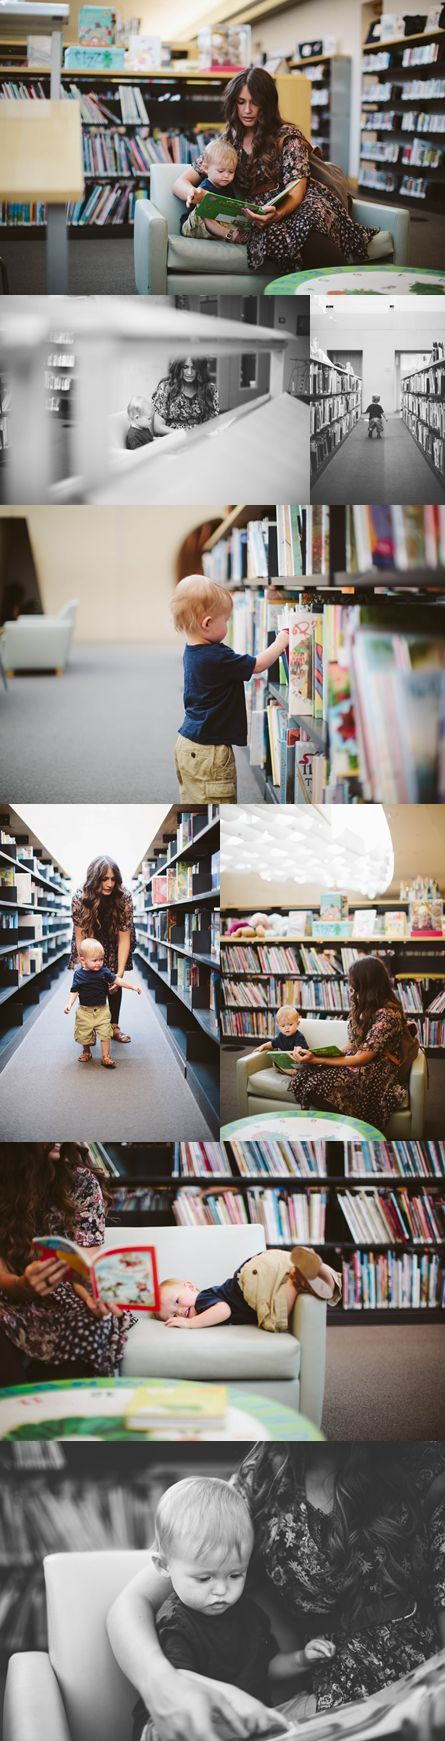 That's such a great idea! Want to try this! A simple trip to the library produces lifestyle moments that tell a story.